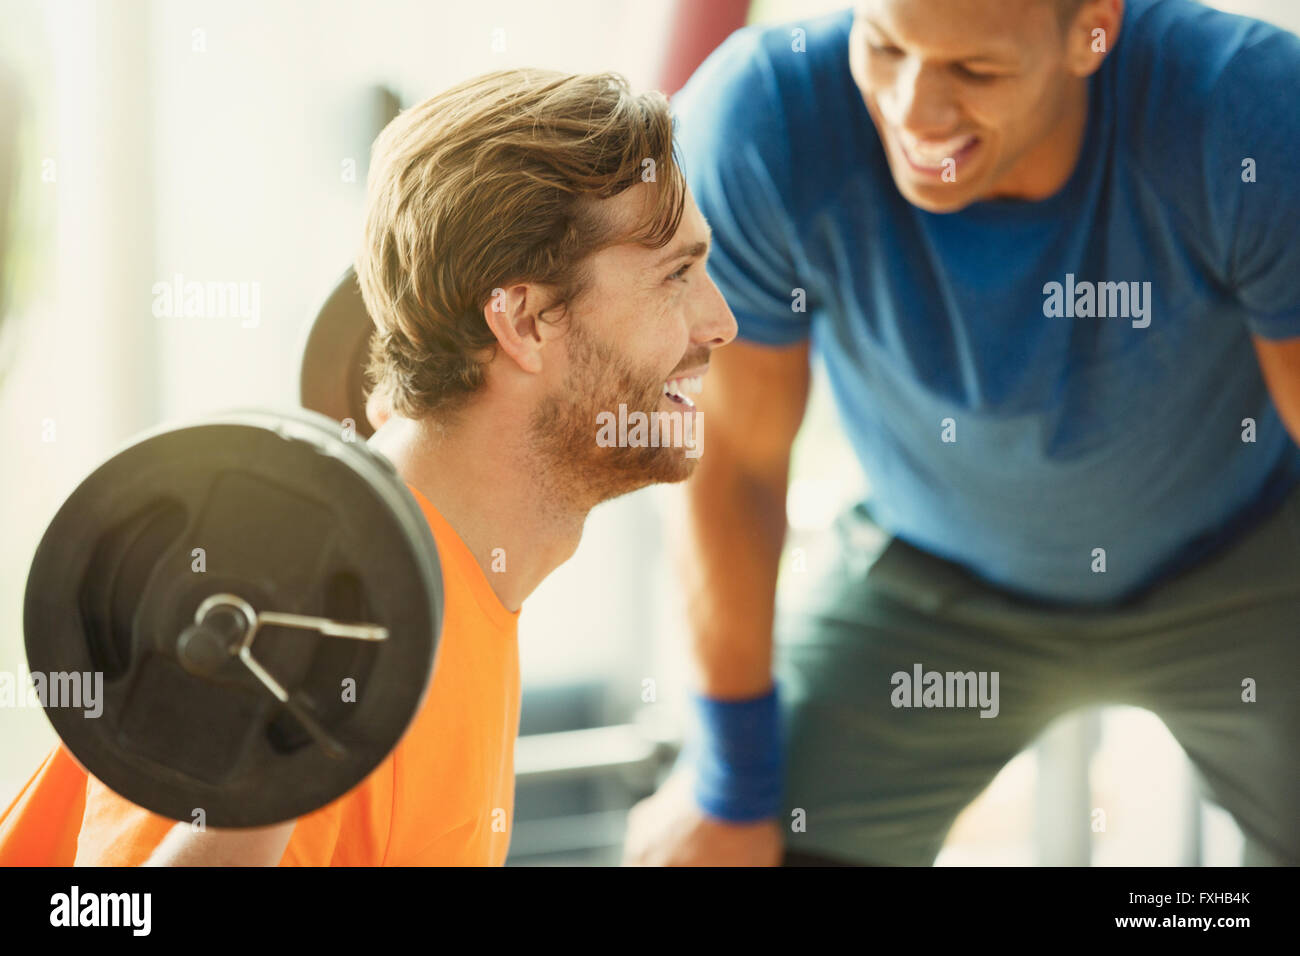 Entraîneur personnel encourageant man doing barbell squats at gym Photo Stock